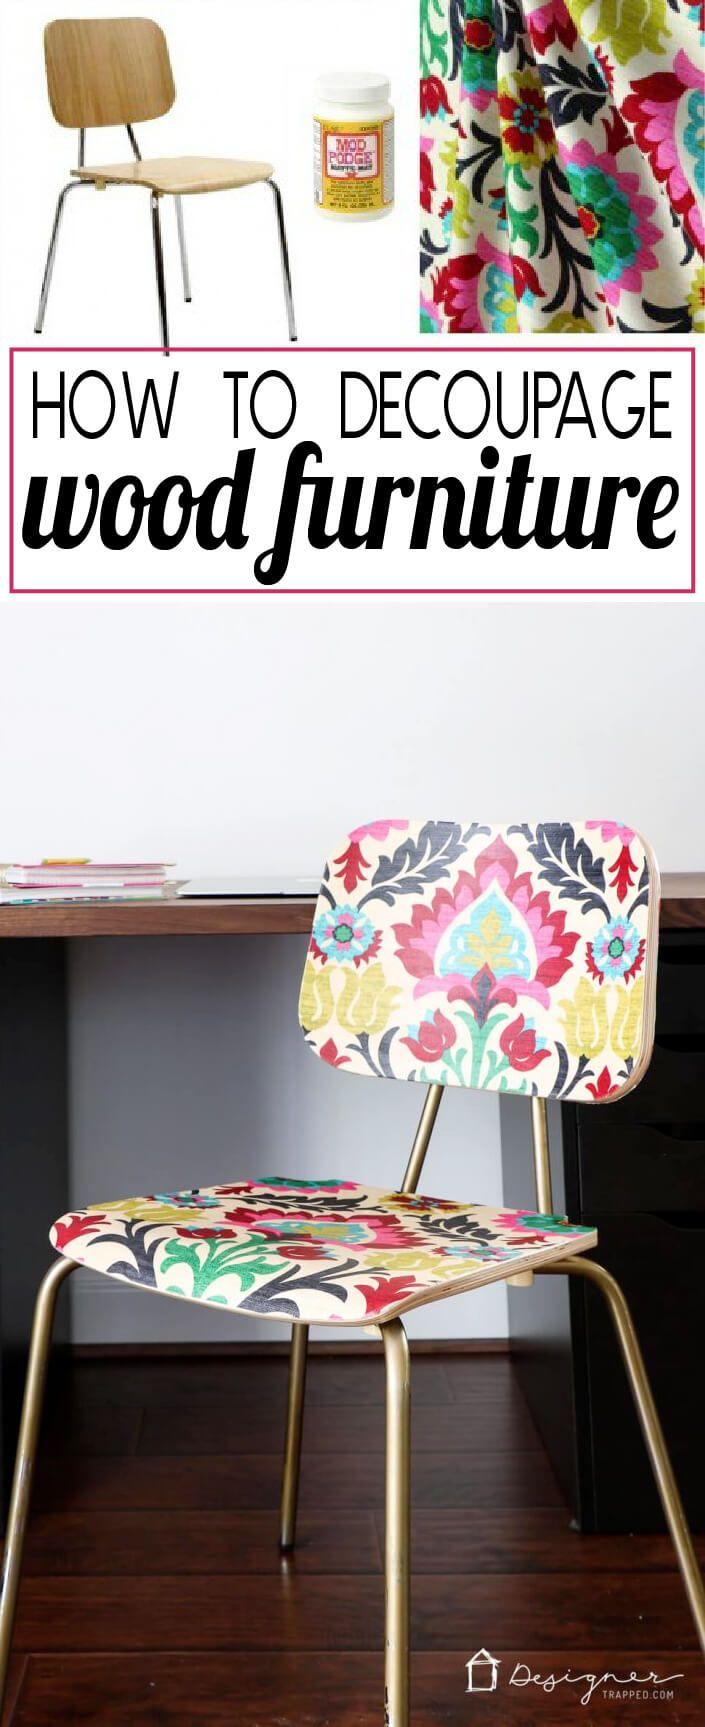 how to decoupage furniture for an upholstered look stuhl m bel und chen. Black Bedroom Furniture Sets. Home Design Ideas